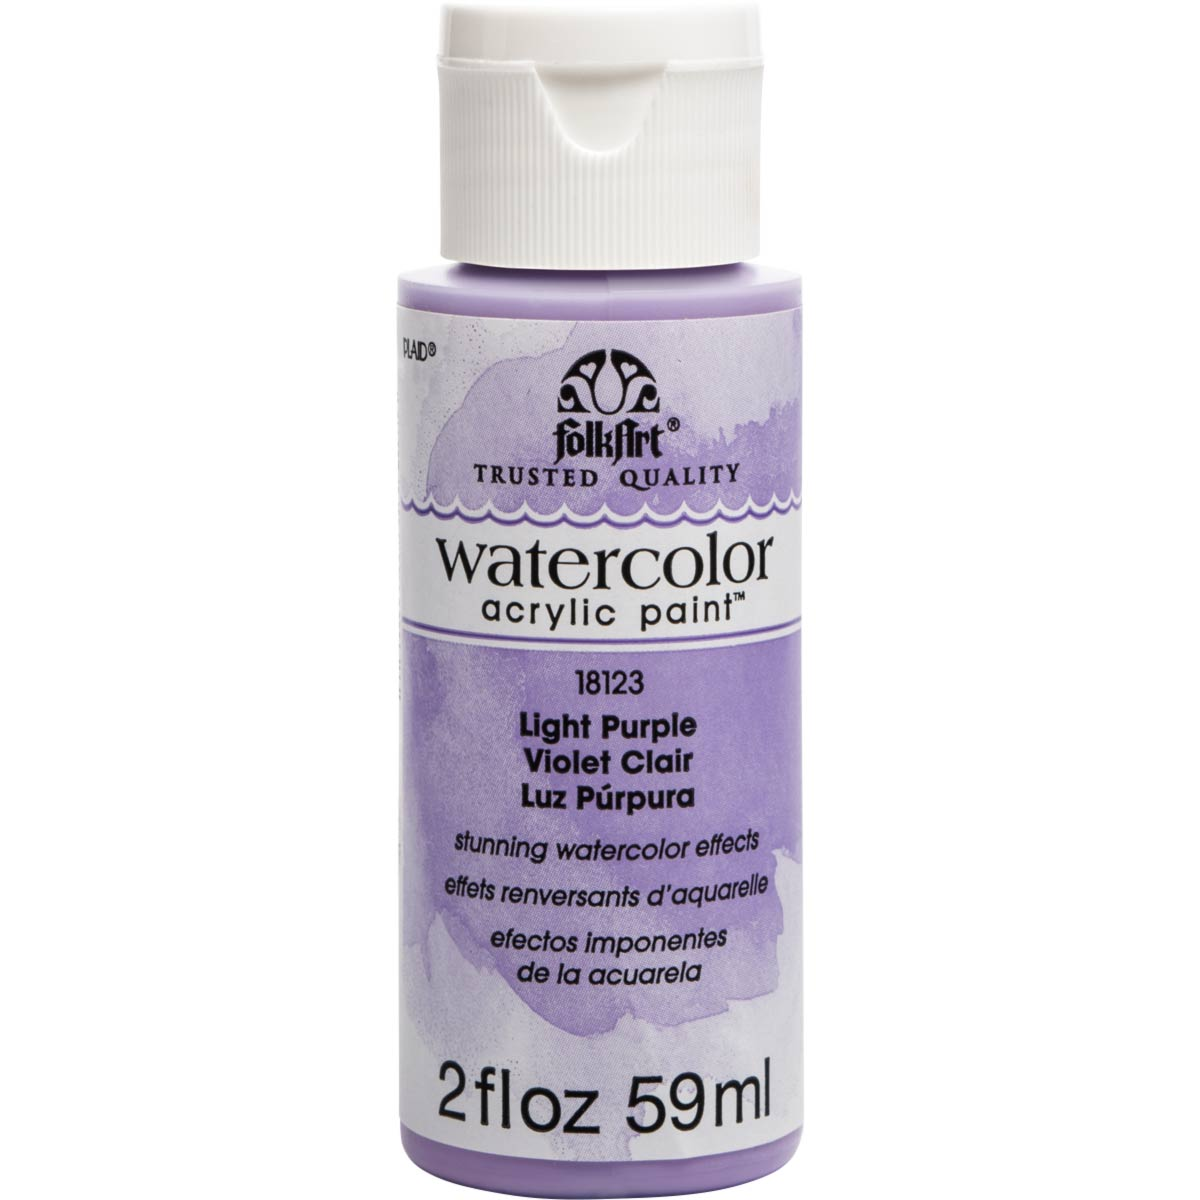 FolkArt ® Watercolor Acrylic Paint™ - Light Purple, 2 oz.